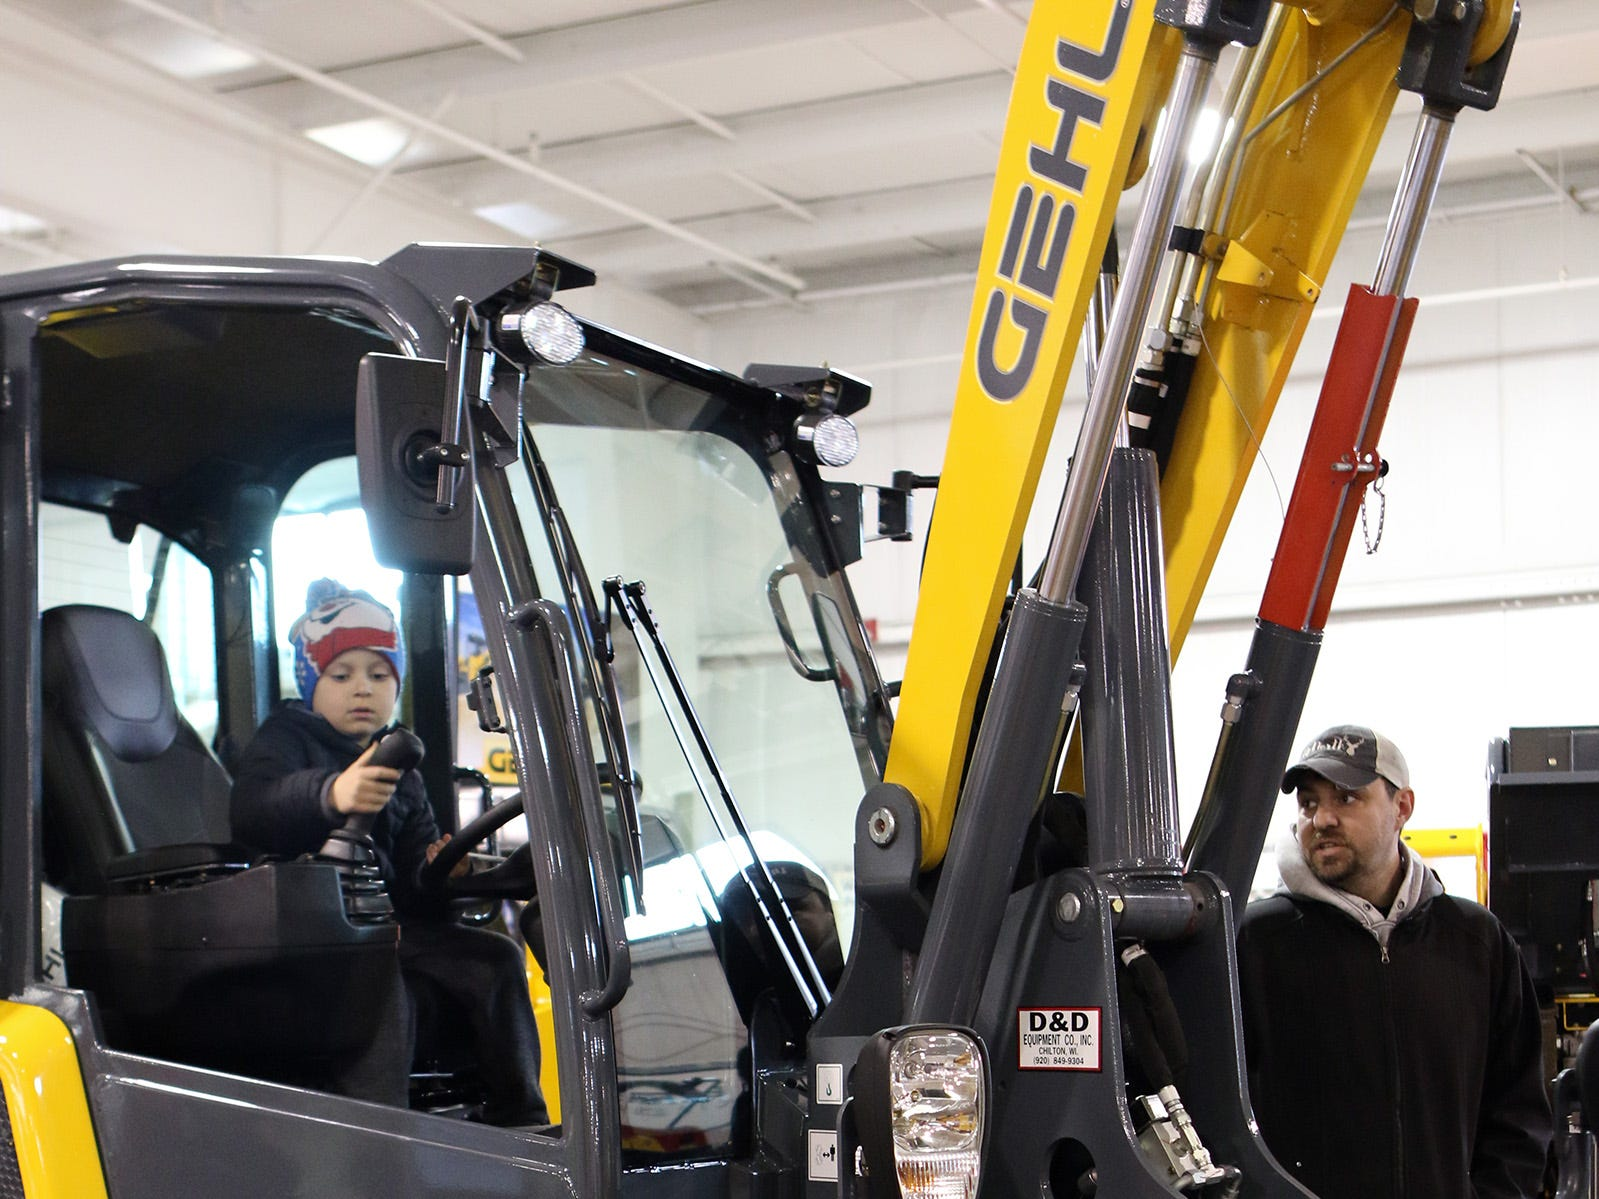 Emmet Zodrow, 6, of Green Lake, checks out the controls on a Gehl tractor while dad, John looks over the outside during the Wisconsin Public Service Farm Show on March 27 in Oshkosh.